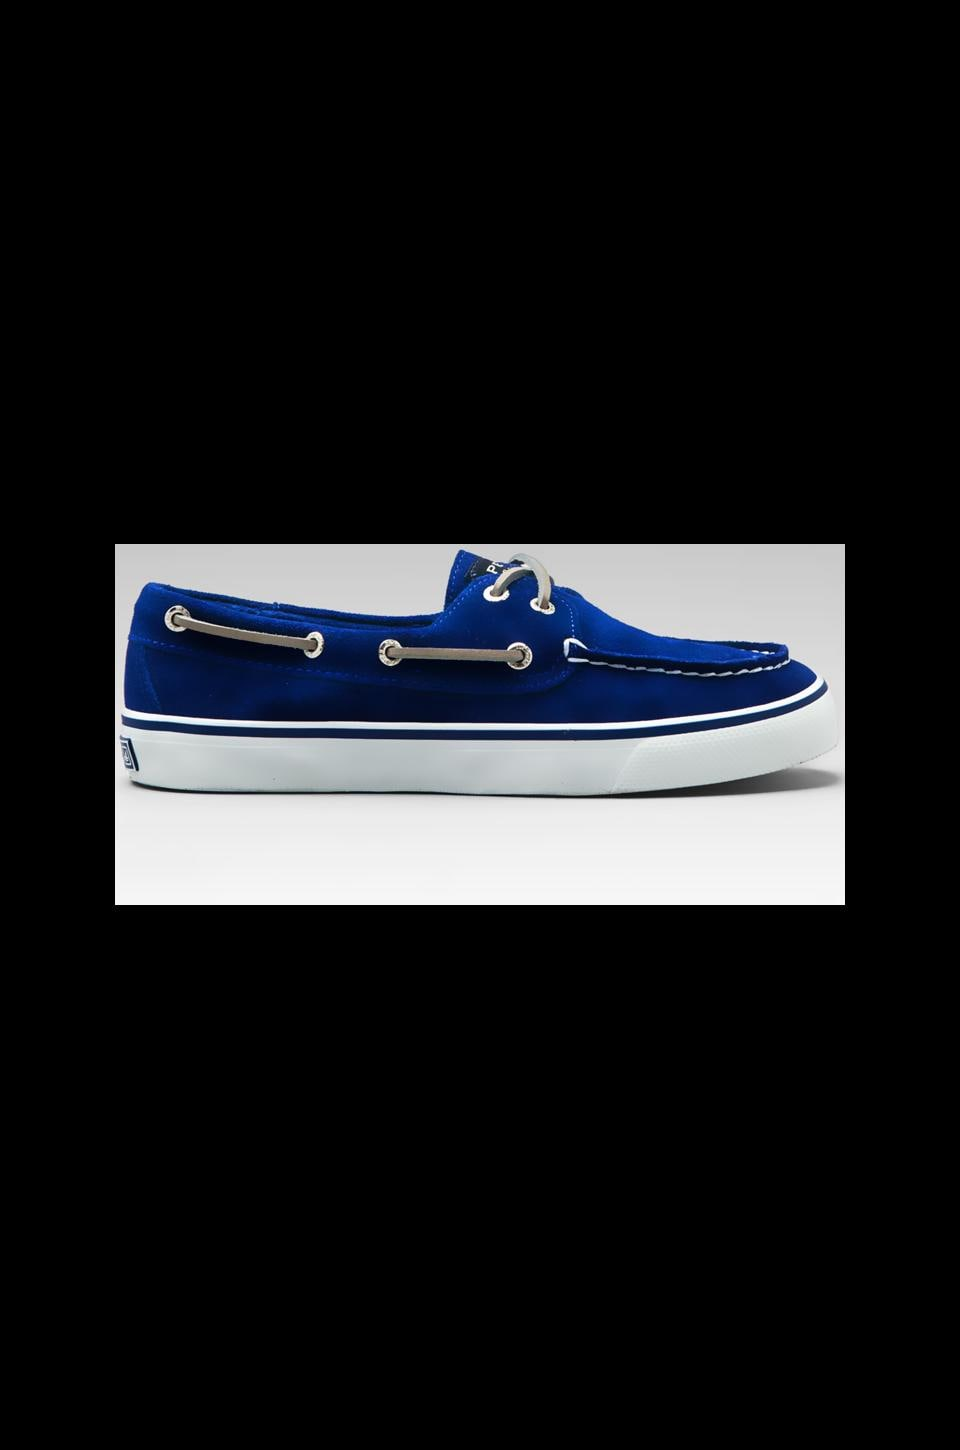 Sperry Top-Sider Bahama 2-Eye in Cobalt Suede